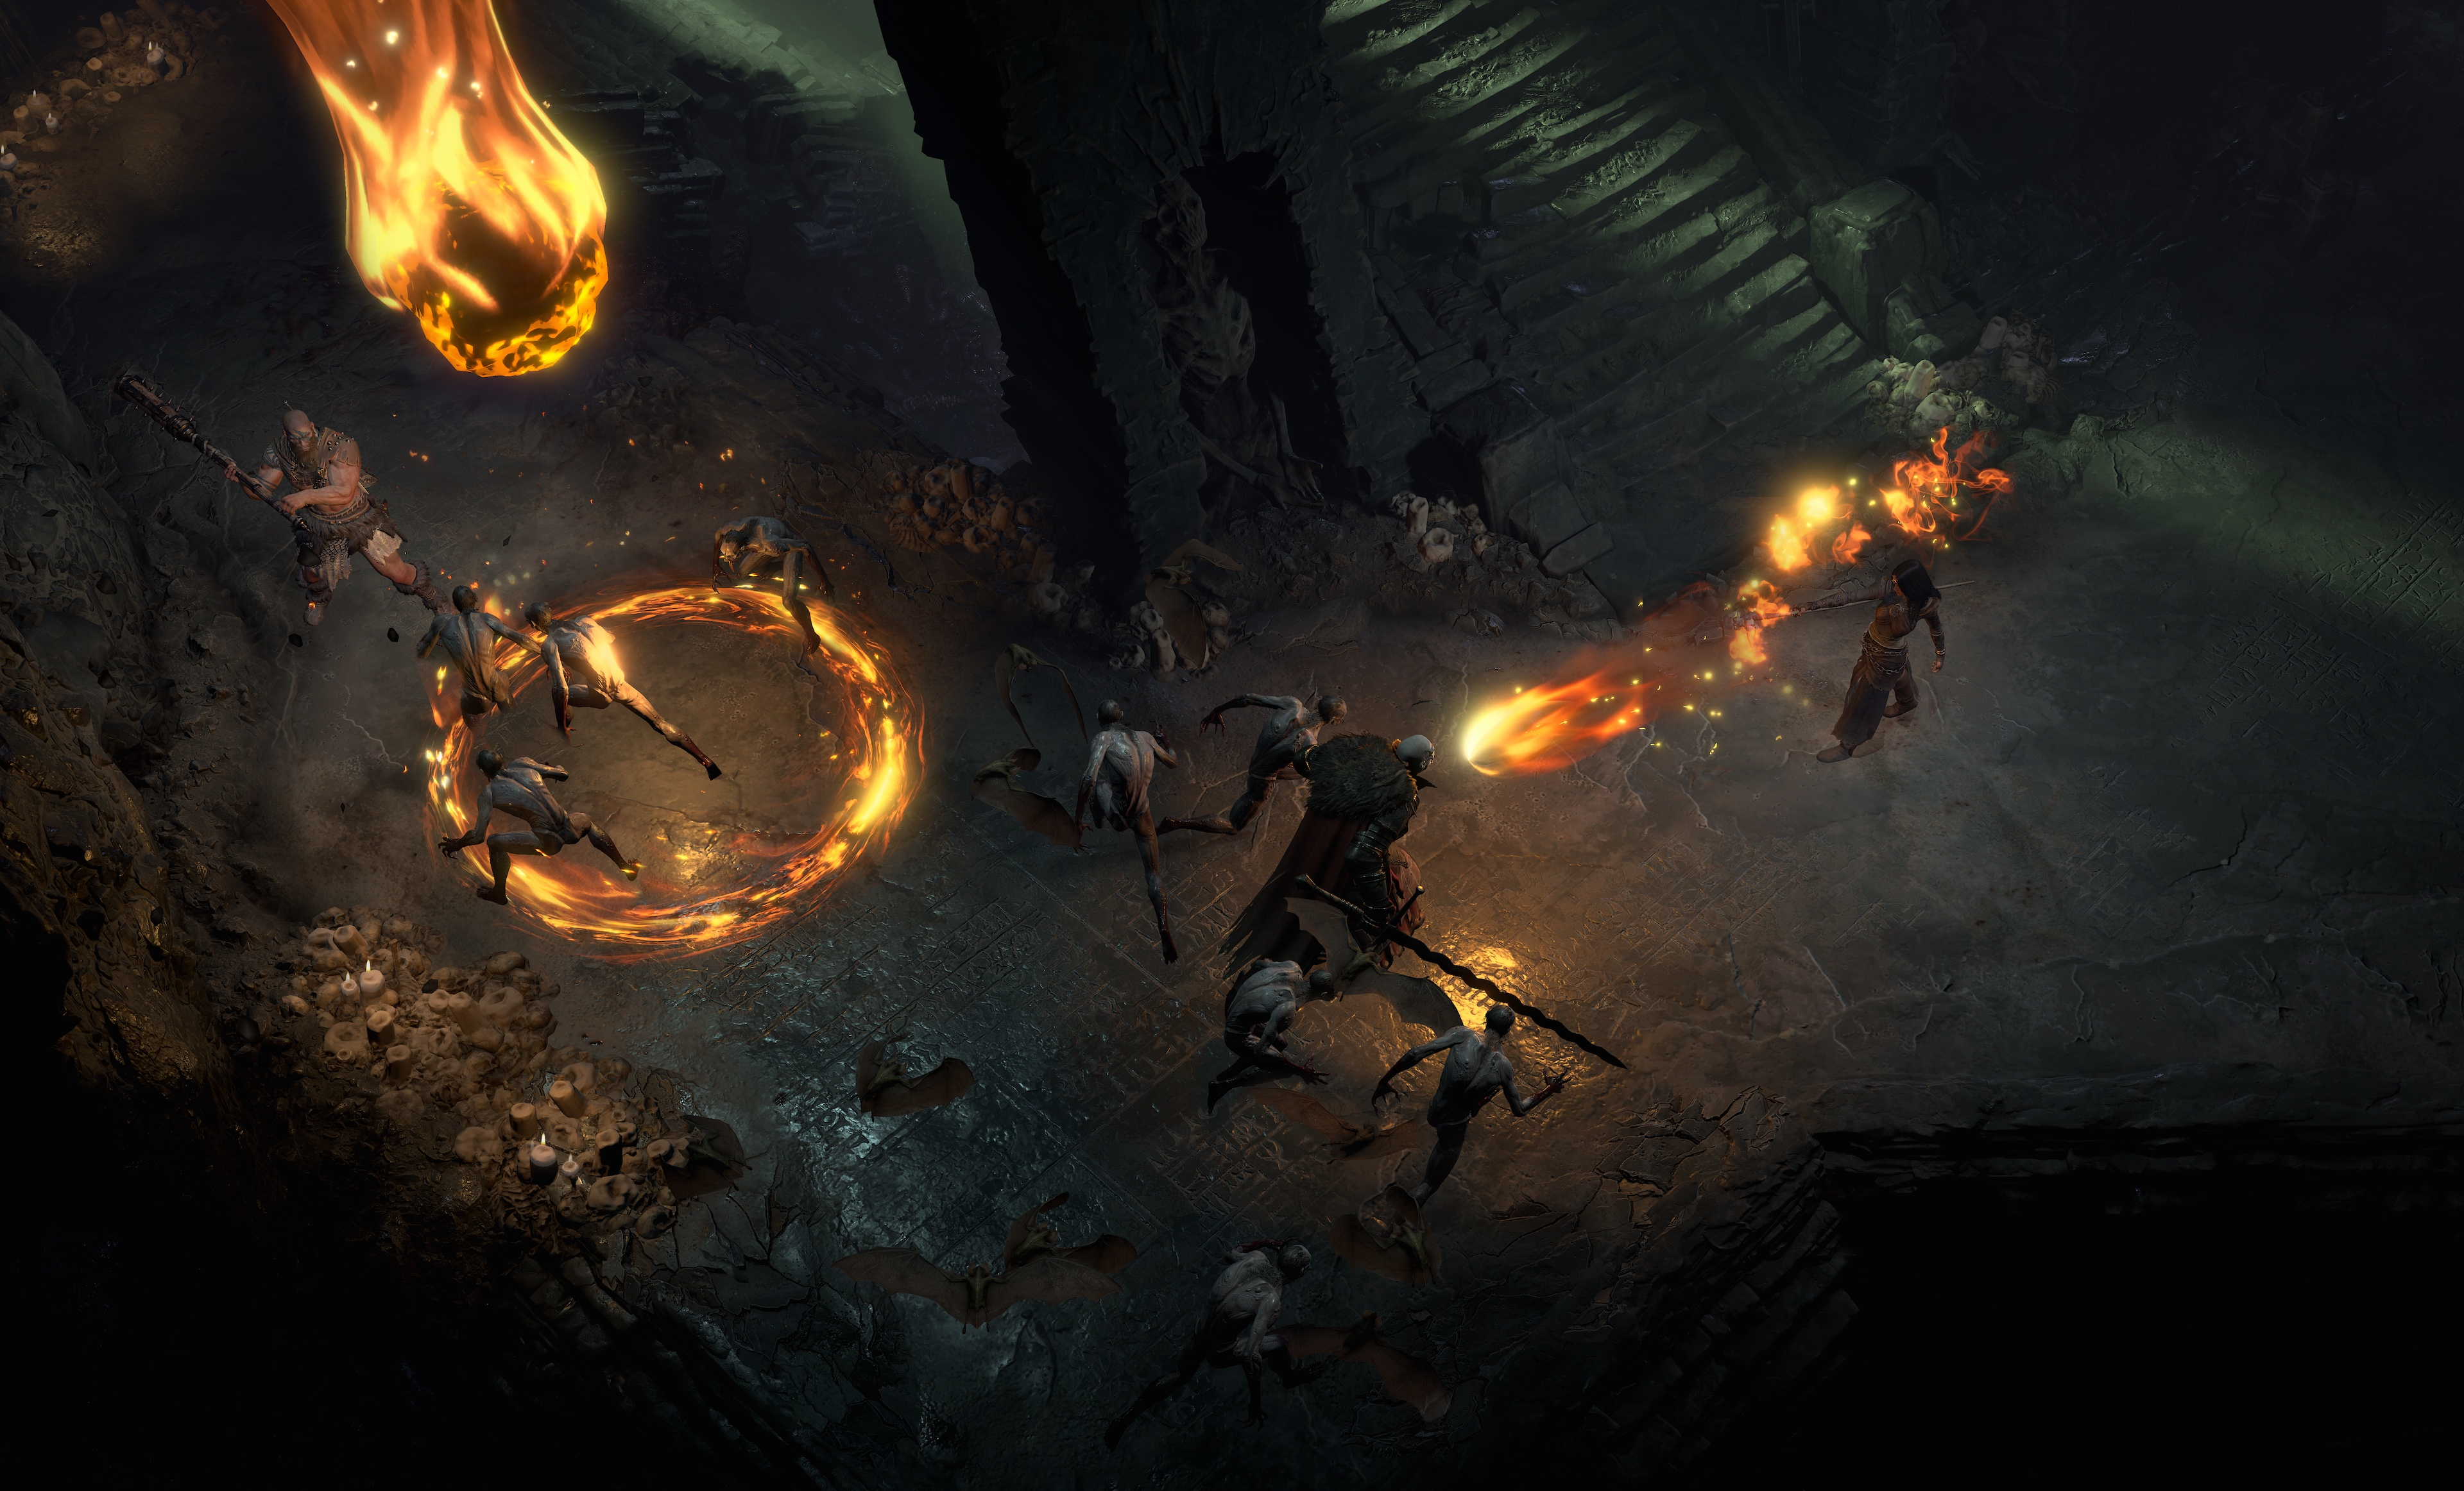 Here are the abilities for Diablo 4's three announced playable classes